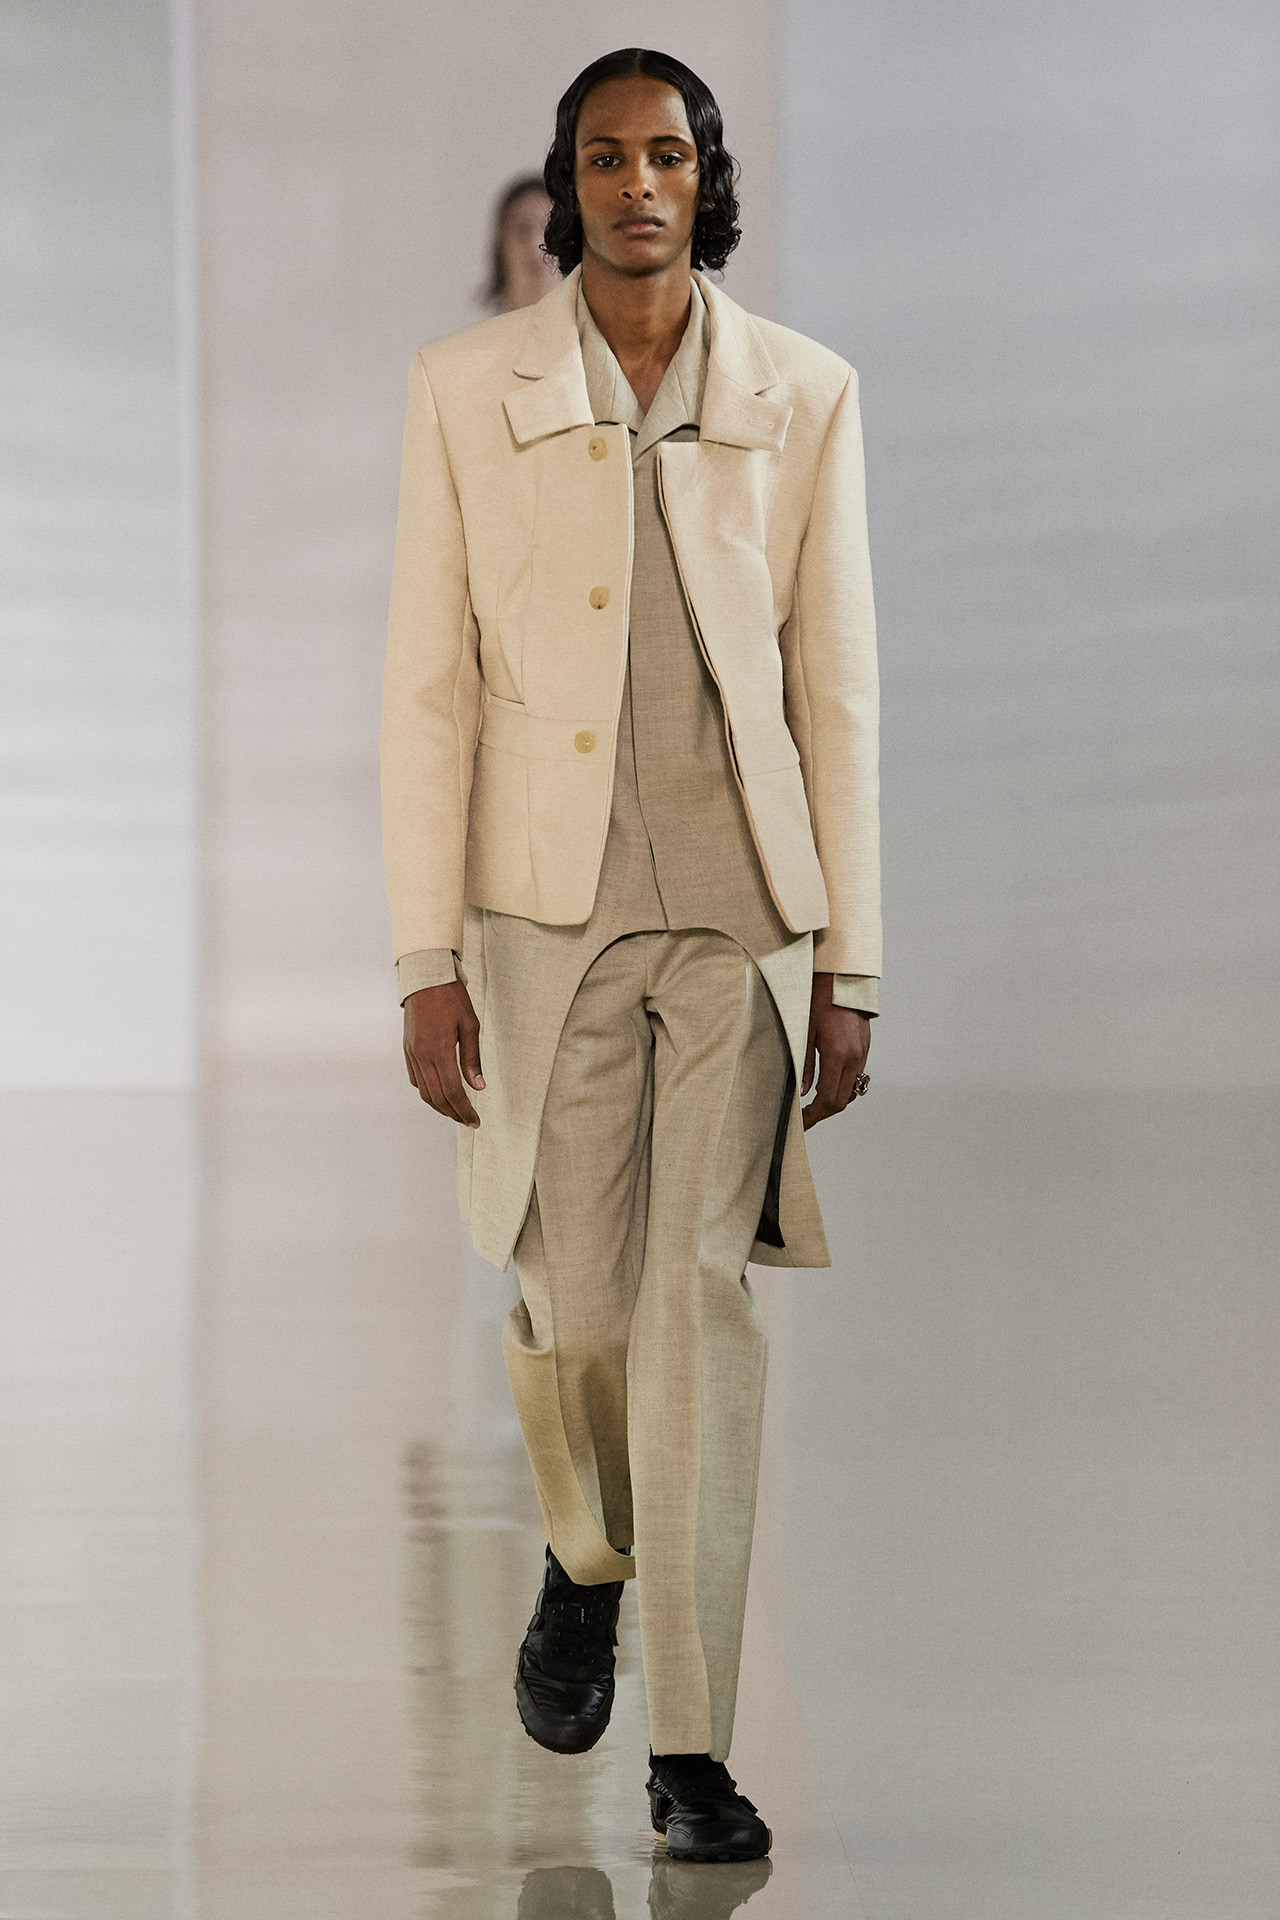 Look Fall/Winter 2020, image 30